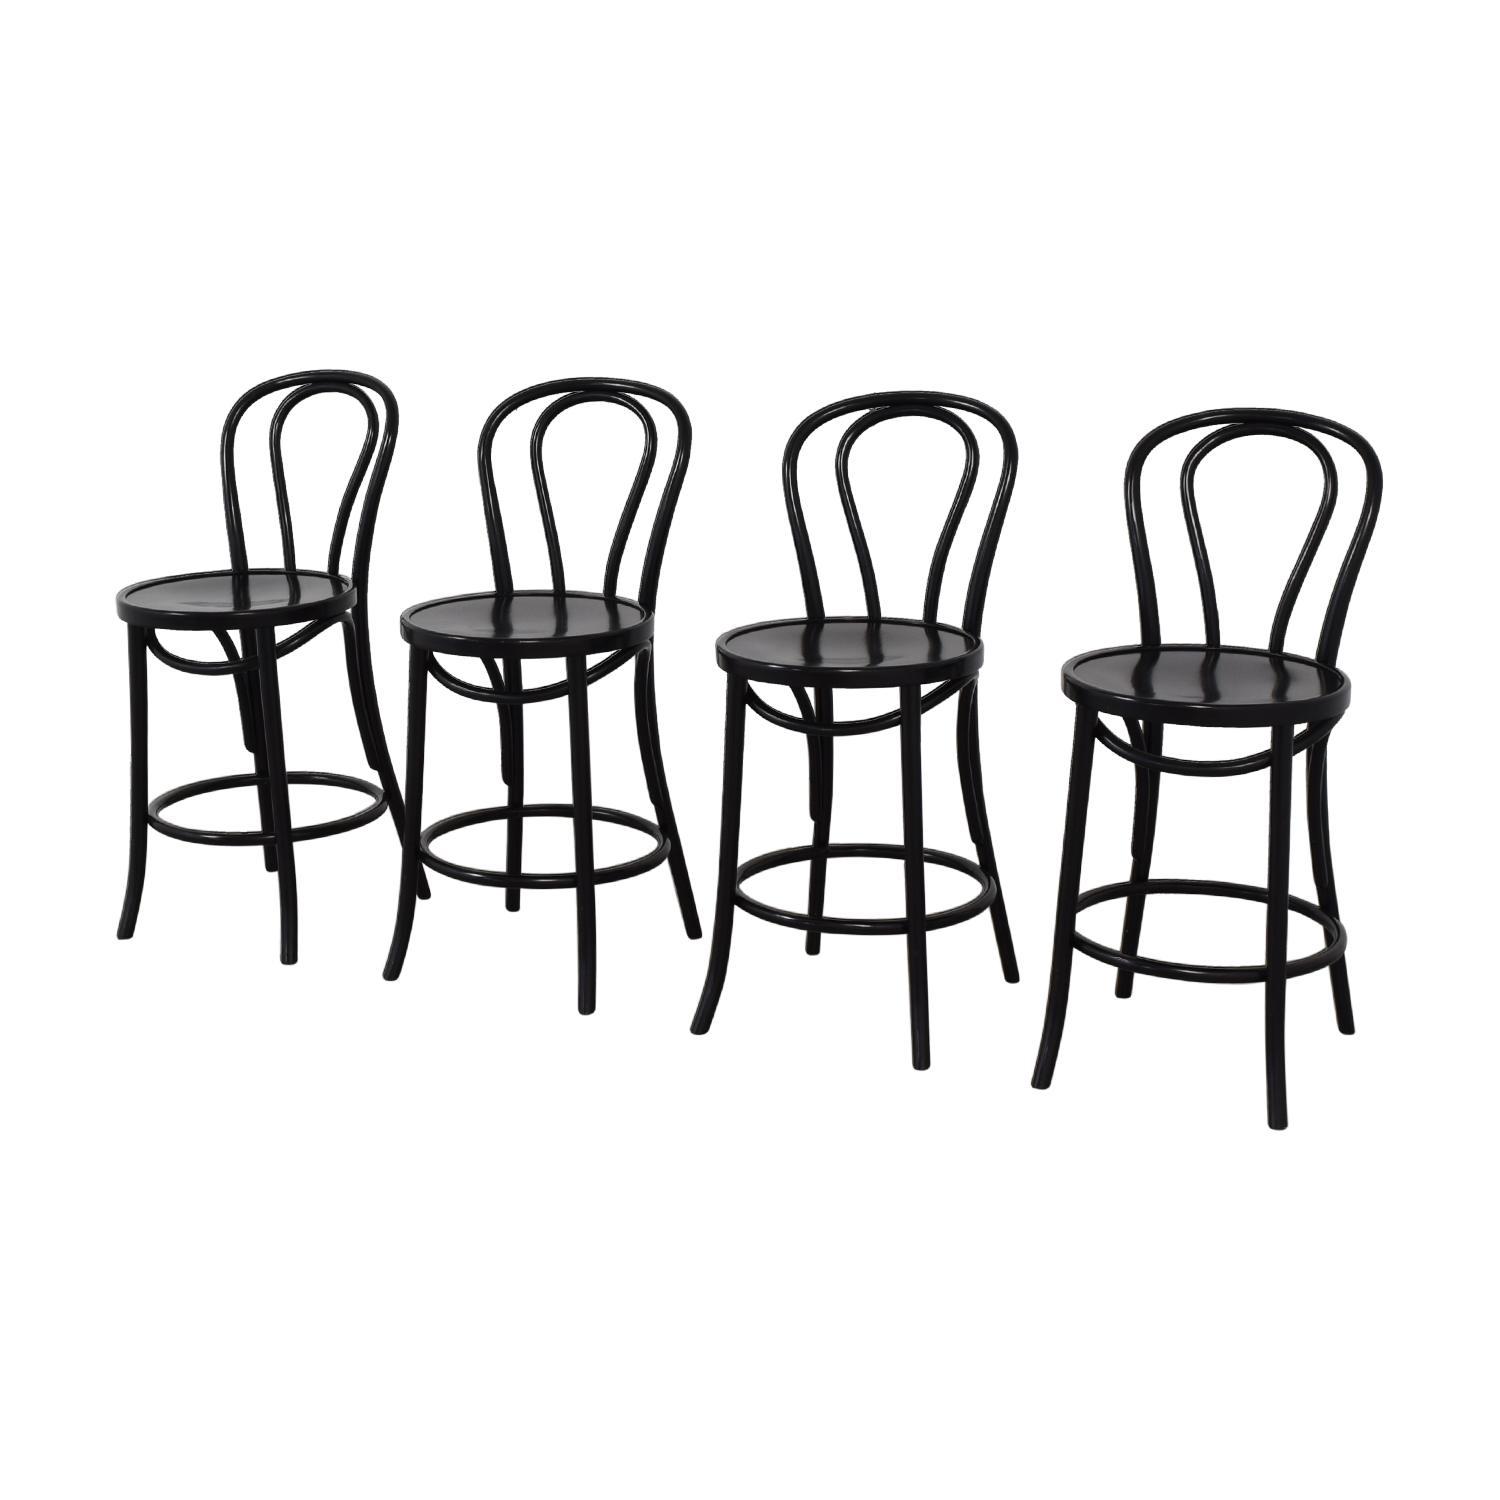 Crate & Barrel Crate & Barrel Vienna Black Matte Counter Stools black